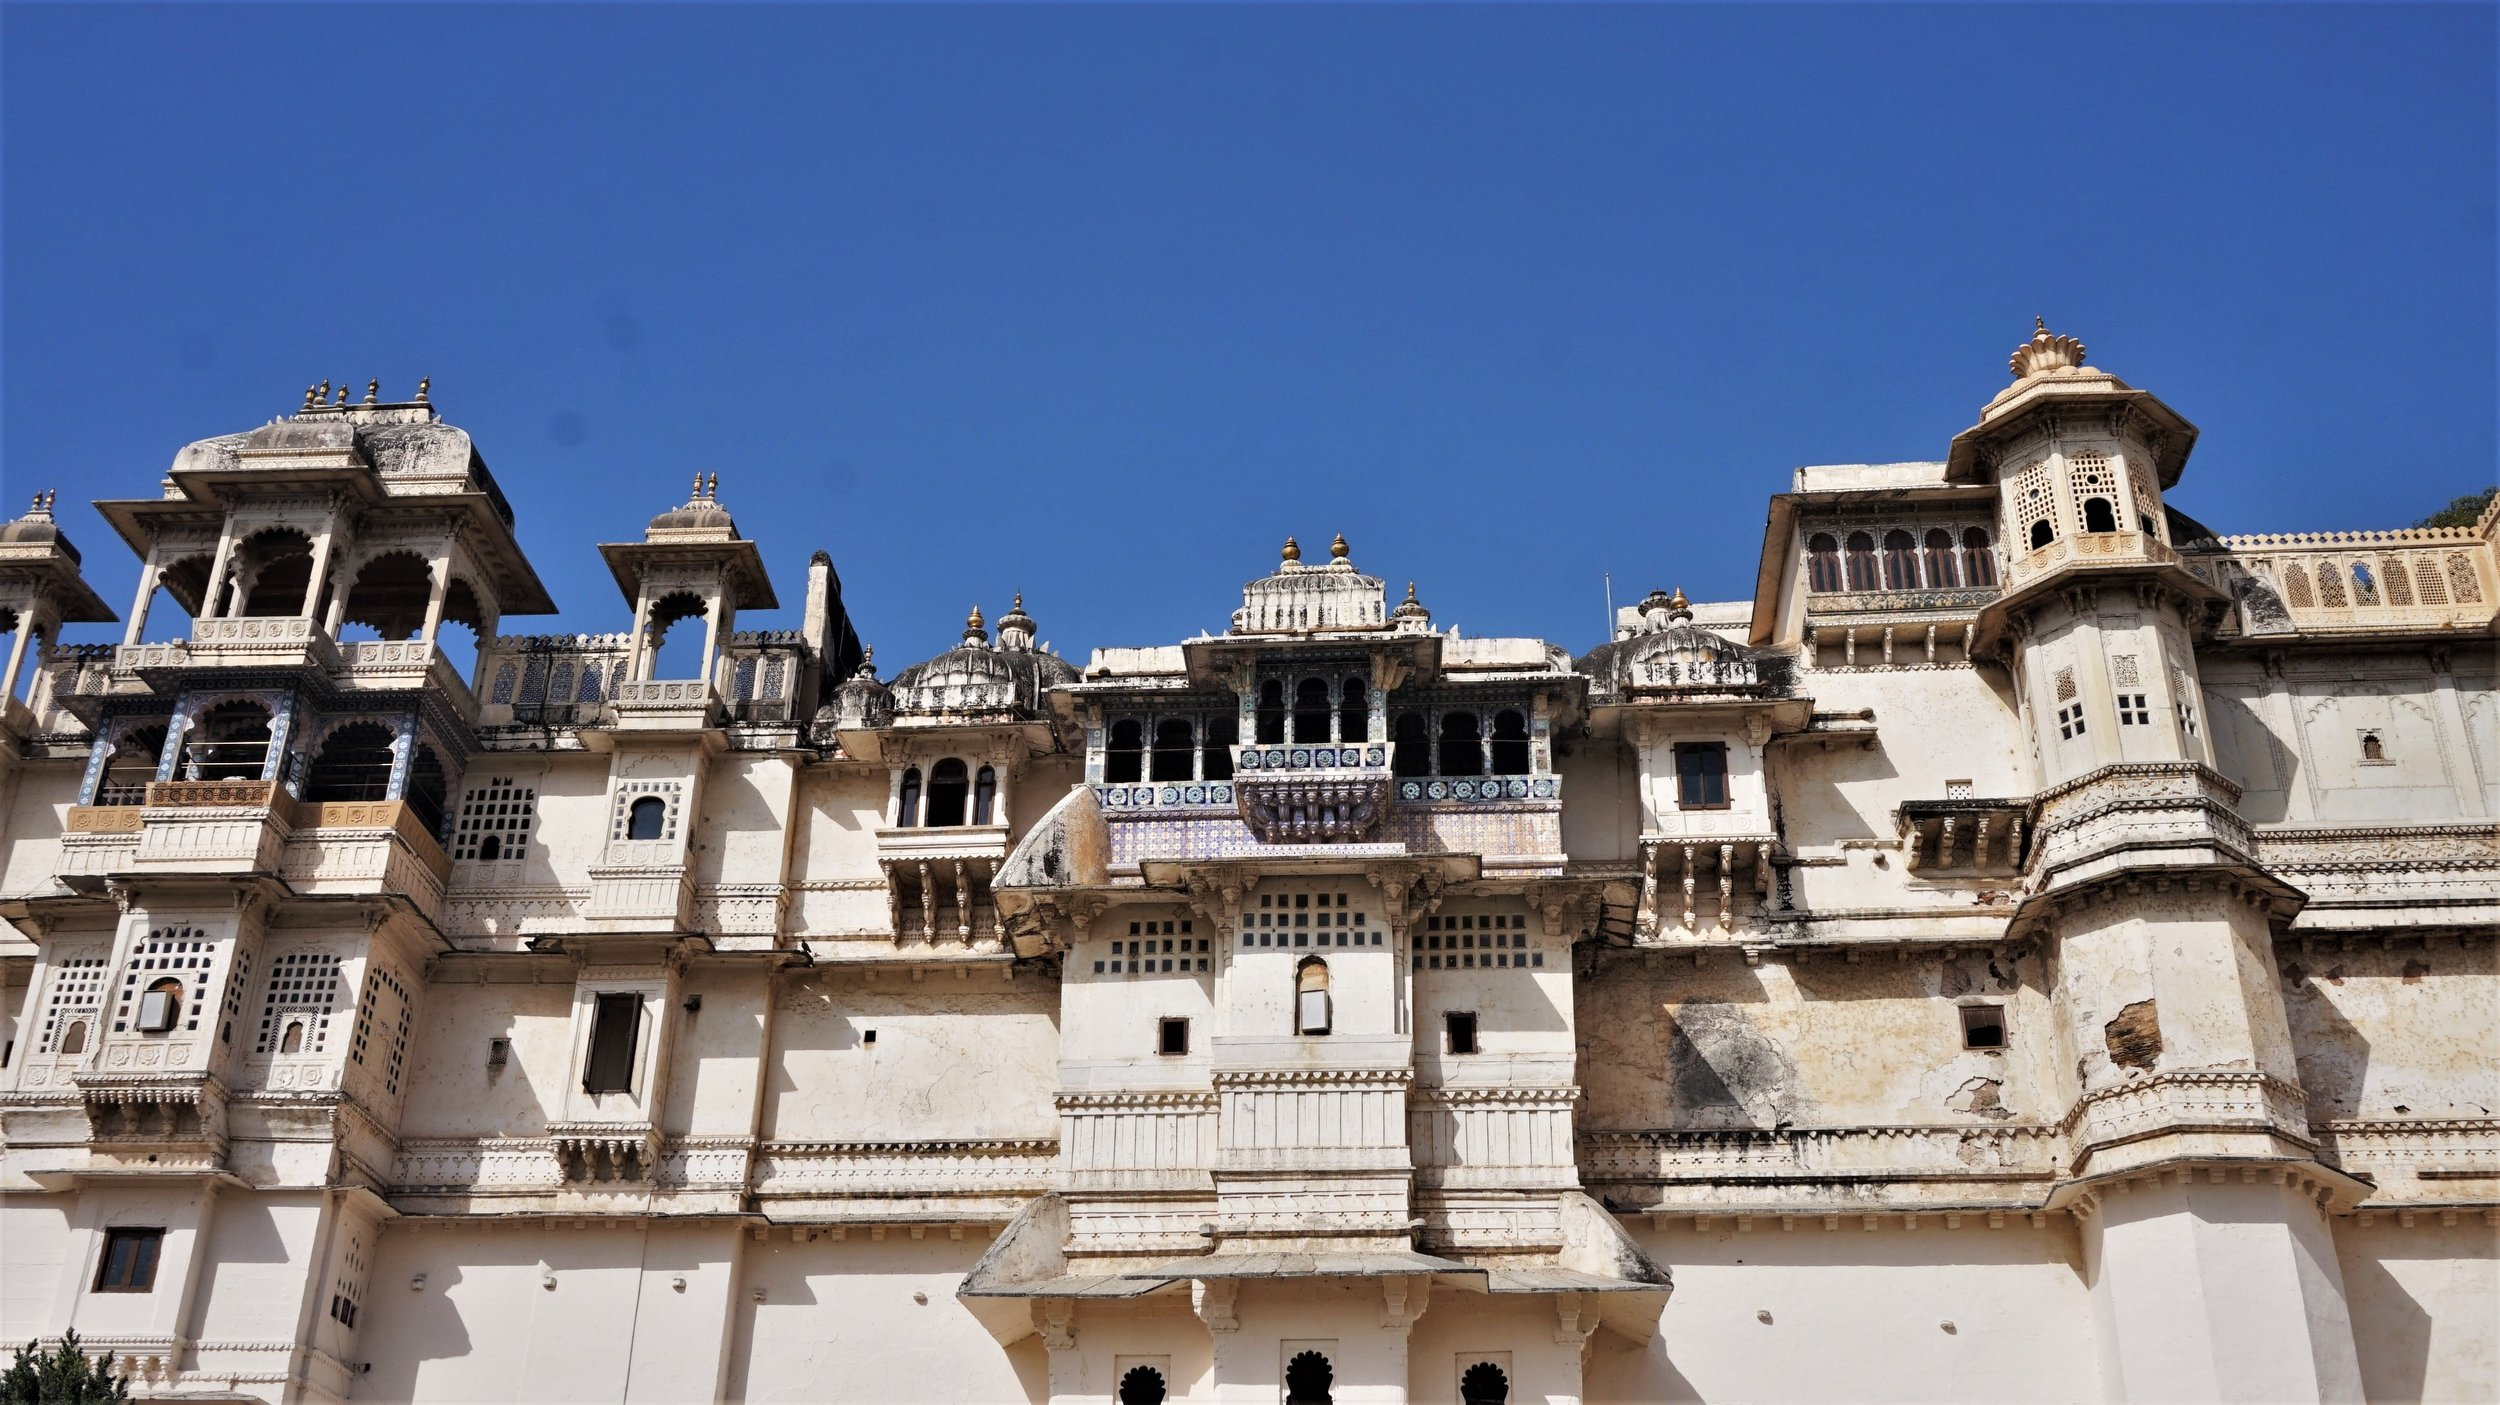 The Udaipur city palace is one of the best things to do in Rajasthan and definitely need to be added to your Rajasthan itinerary!